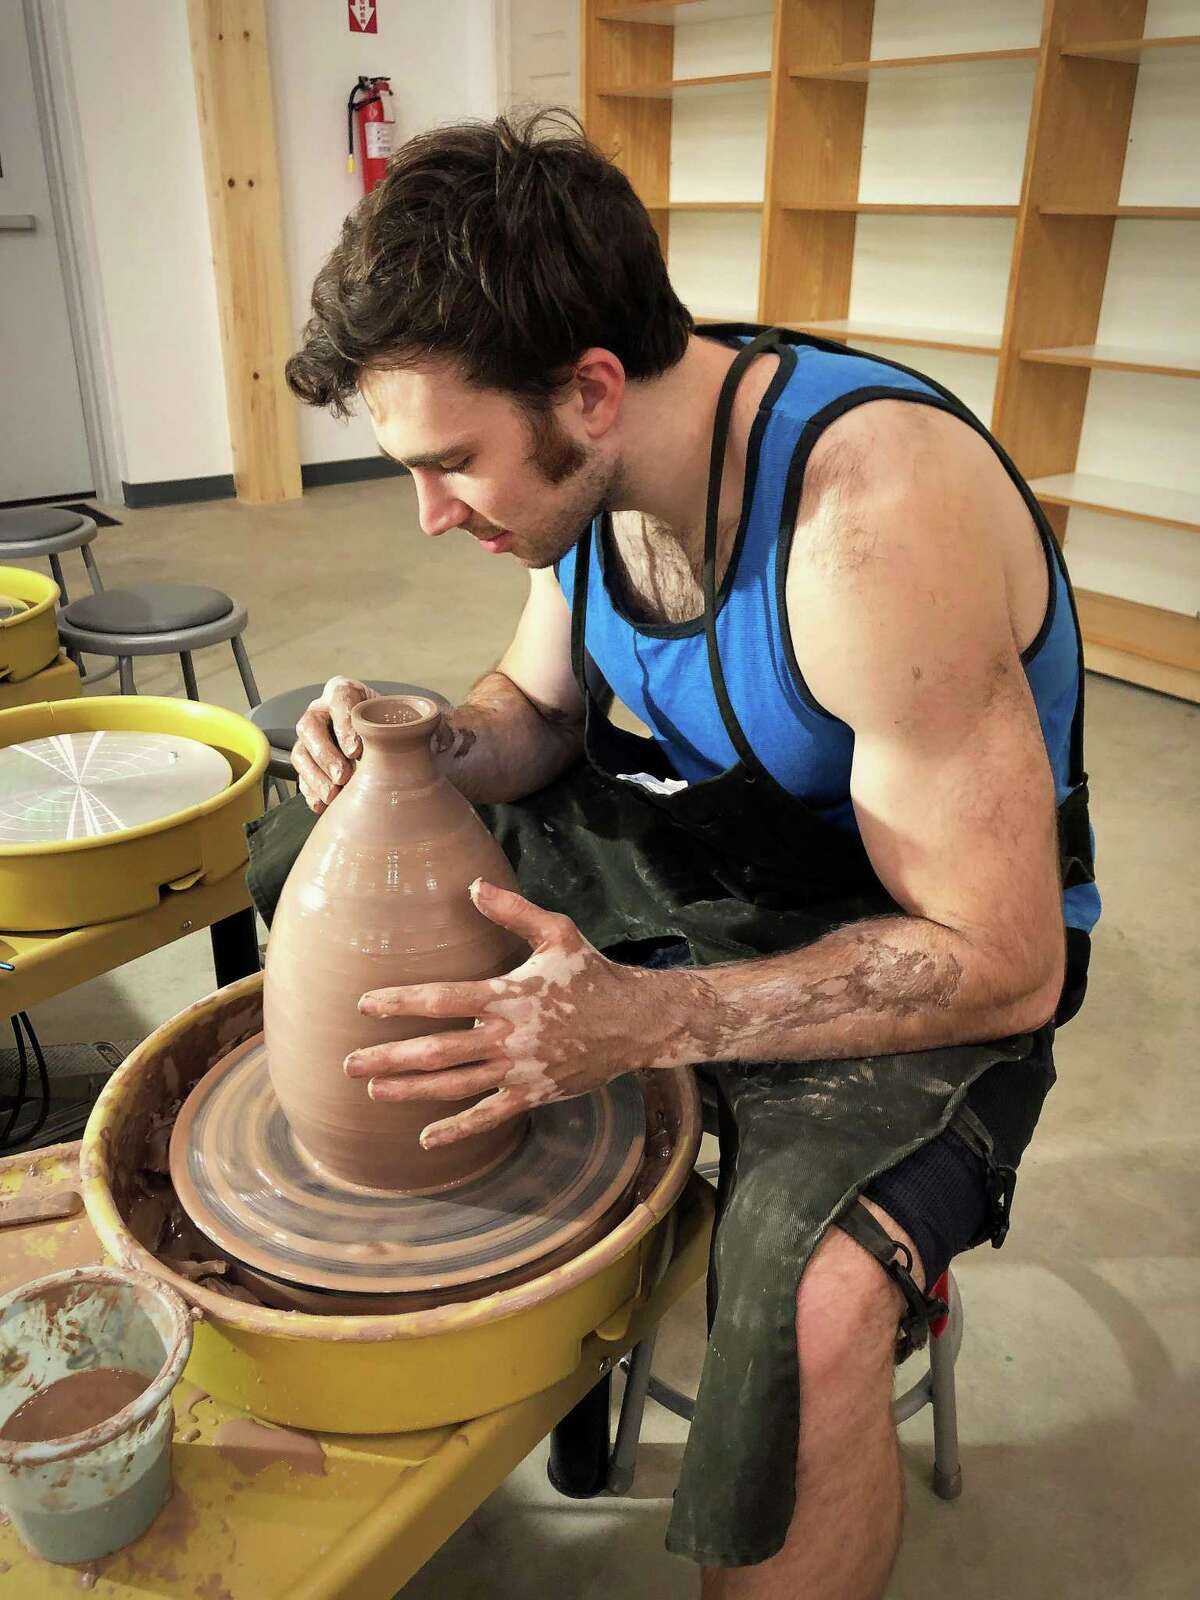 Co-owner Jesse Lane gets his hands dirty as he works on his project at the ceramics wheel in his and his wife's new studio in Magnolia.